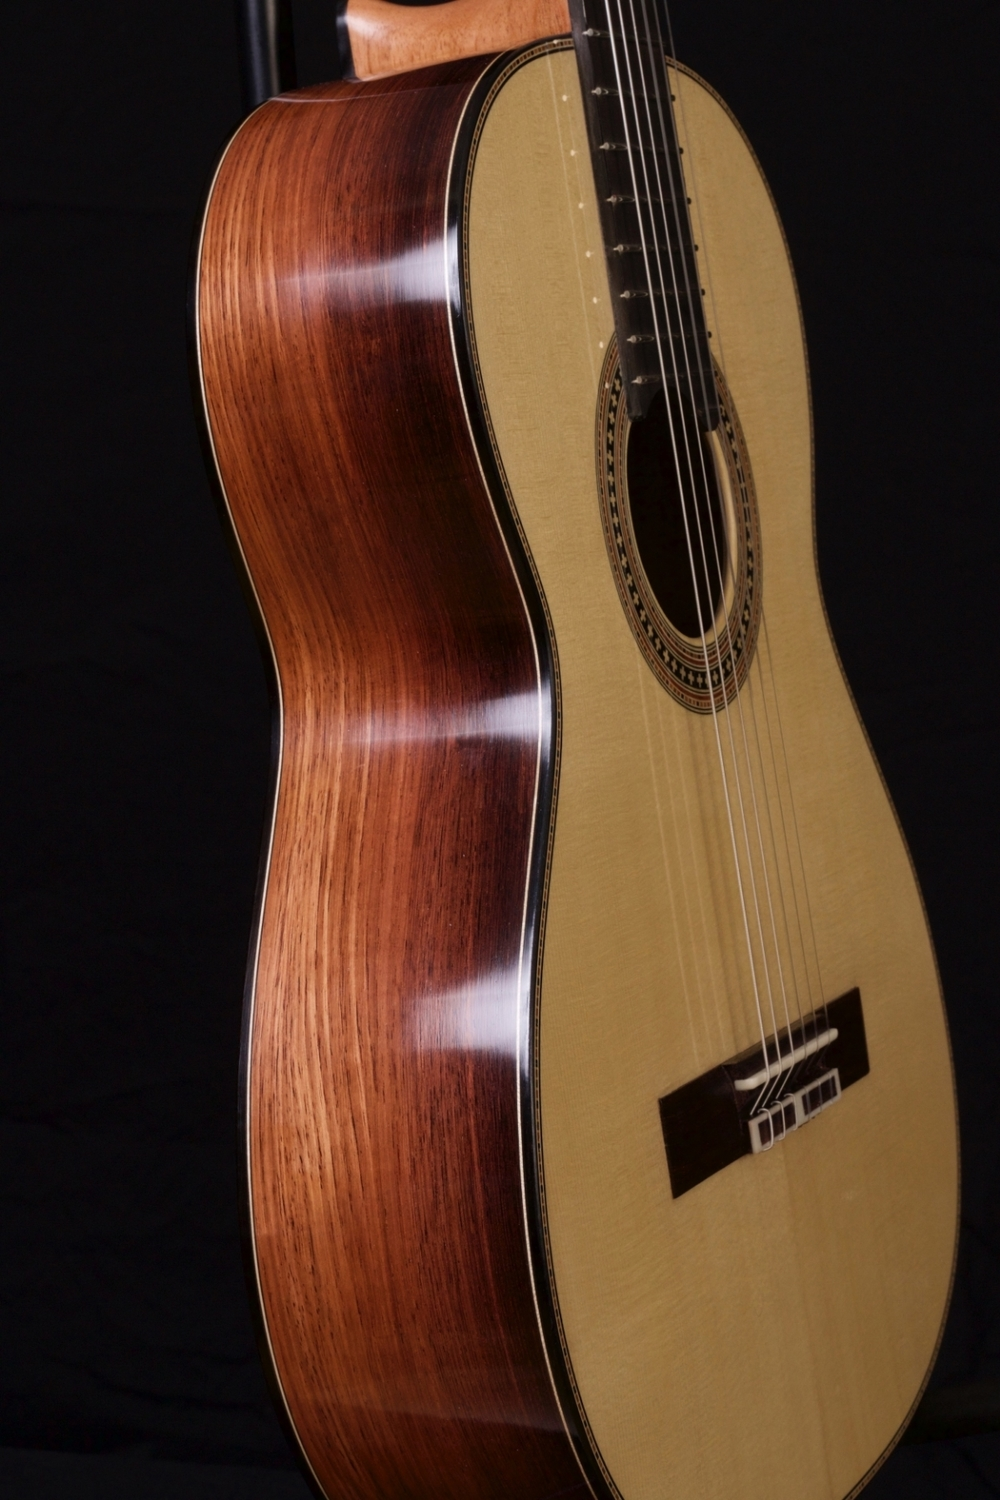 This guitar has a spruce top with Honduran rosewood back and sides. It was sold through the shop of Richard Brune.